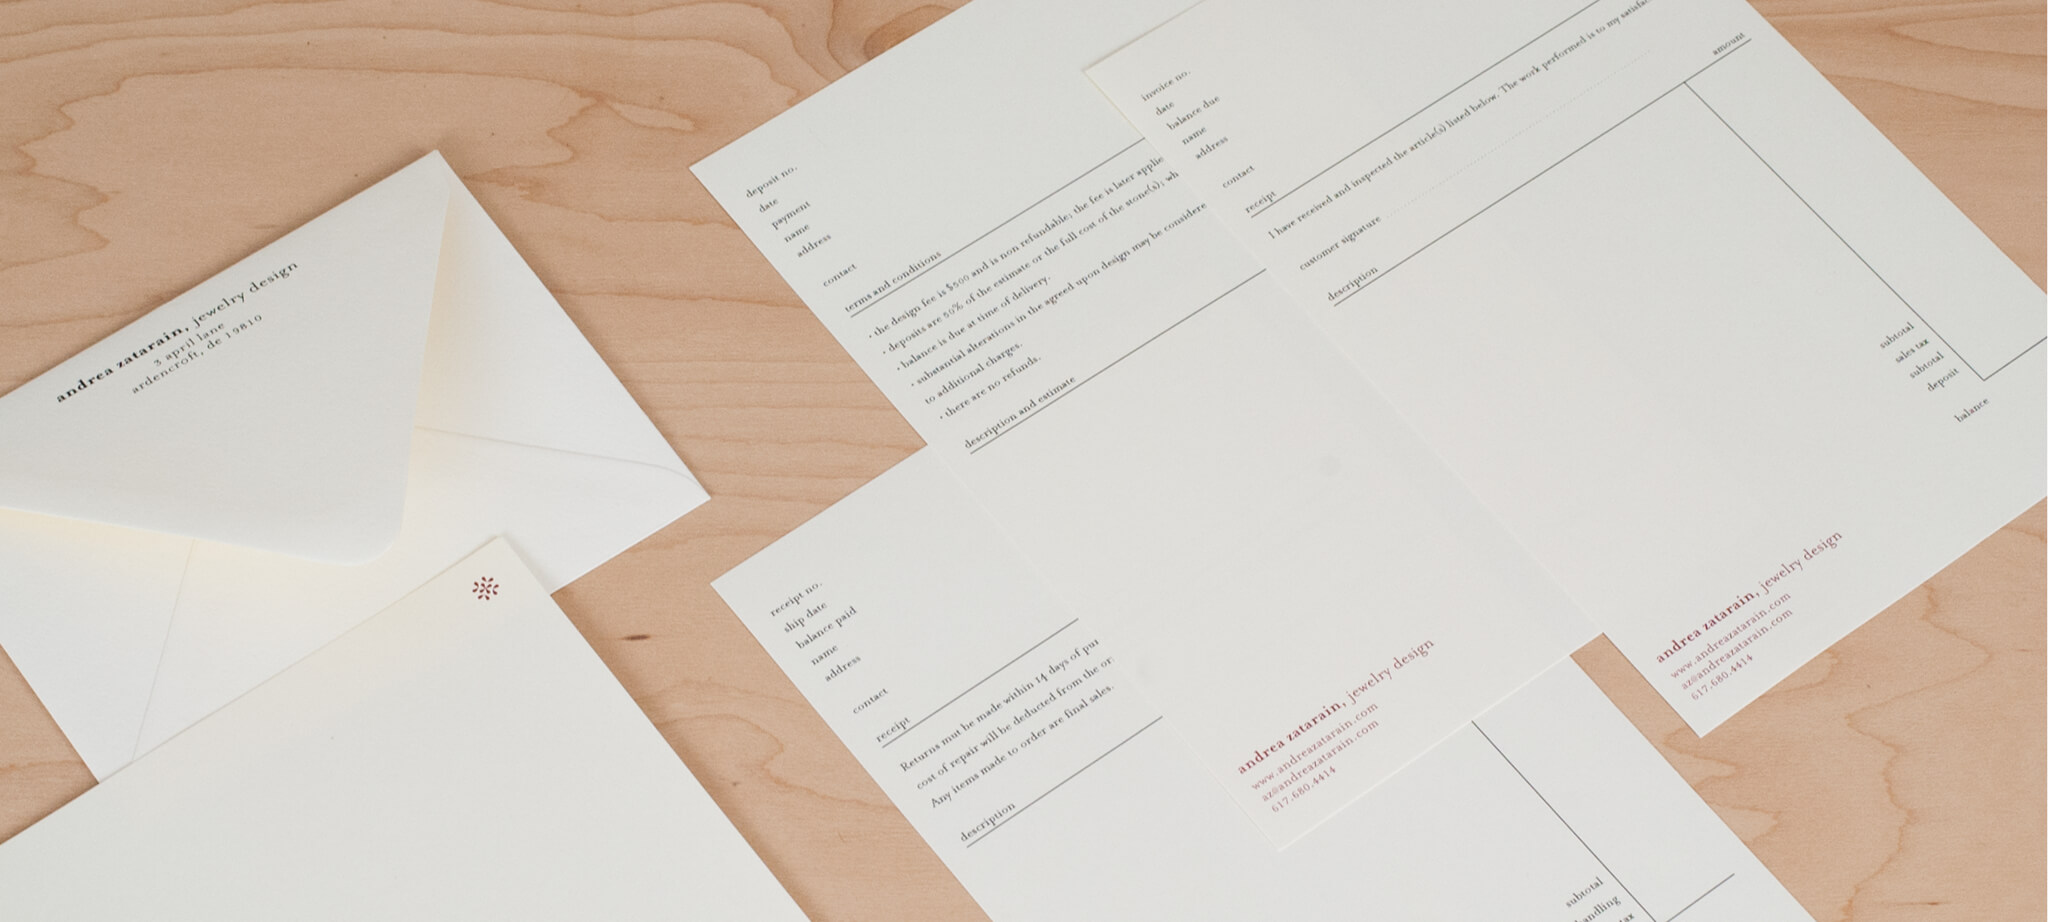 Letterhead and invoices for Andrea Zatarain | Design by  ChrisAndAndy.com